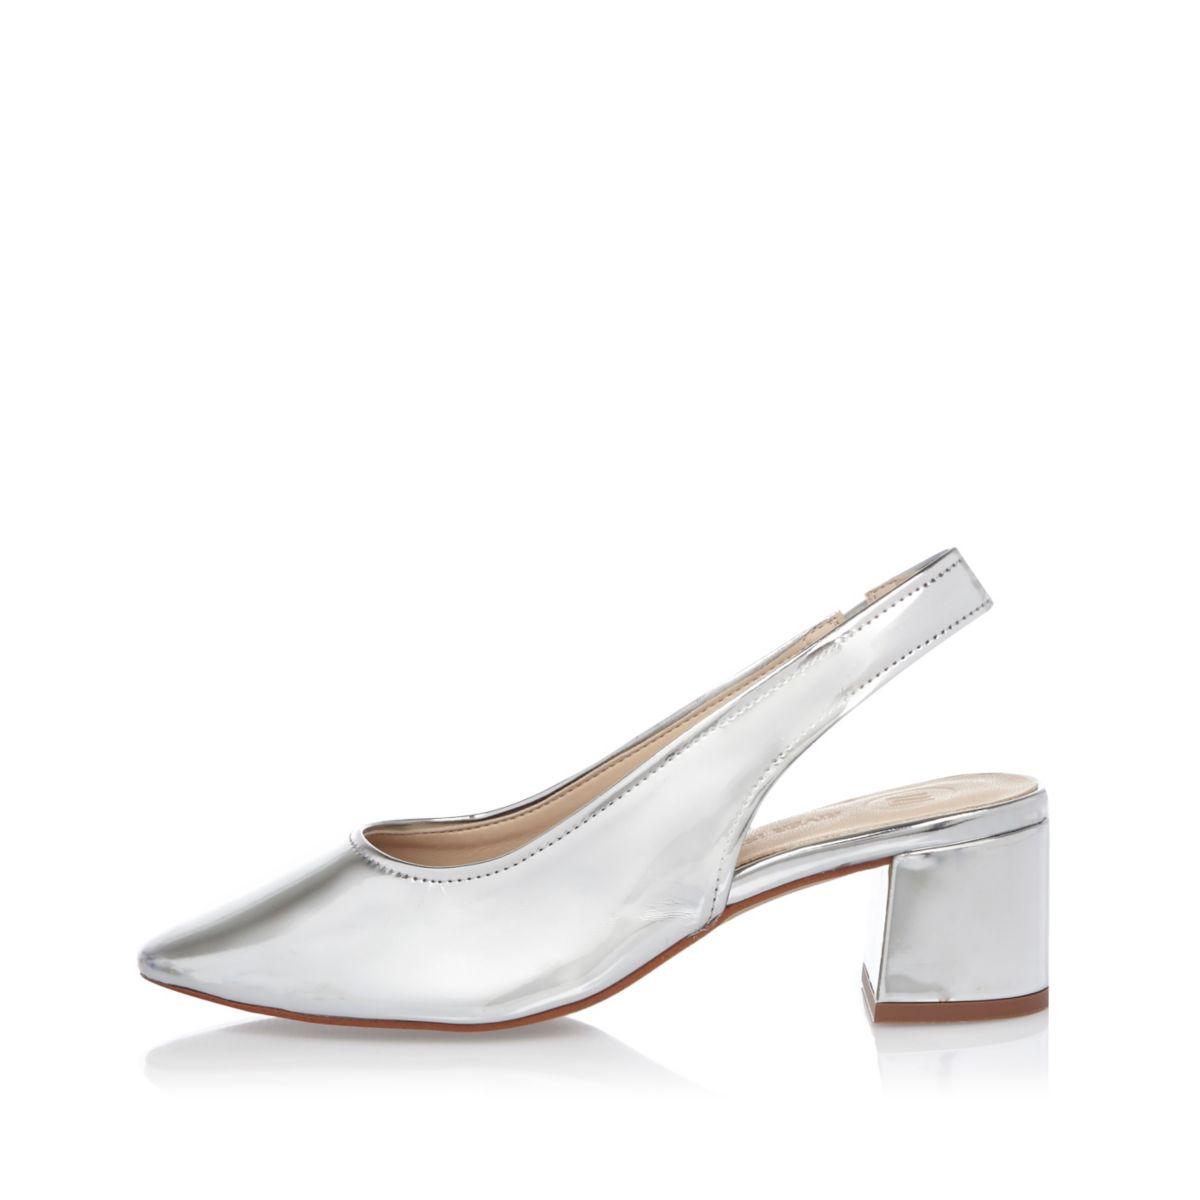 Silver leather slingback pumps